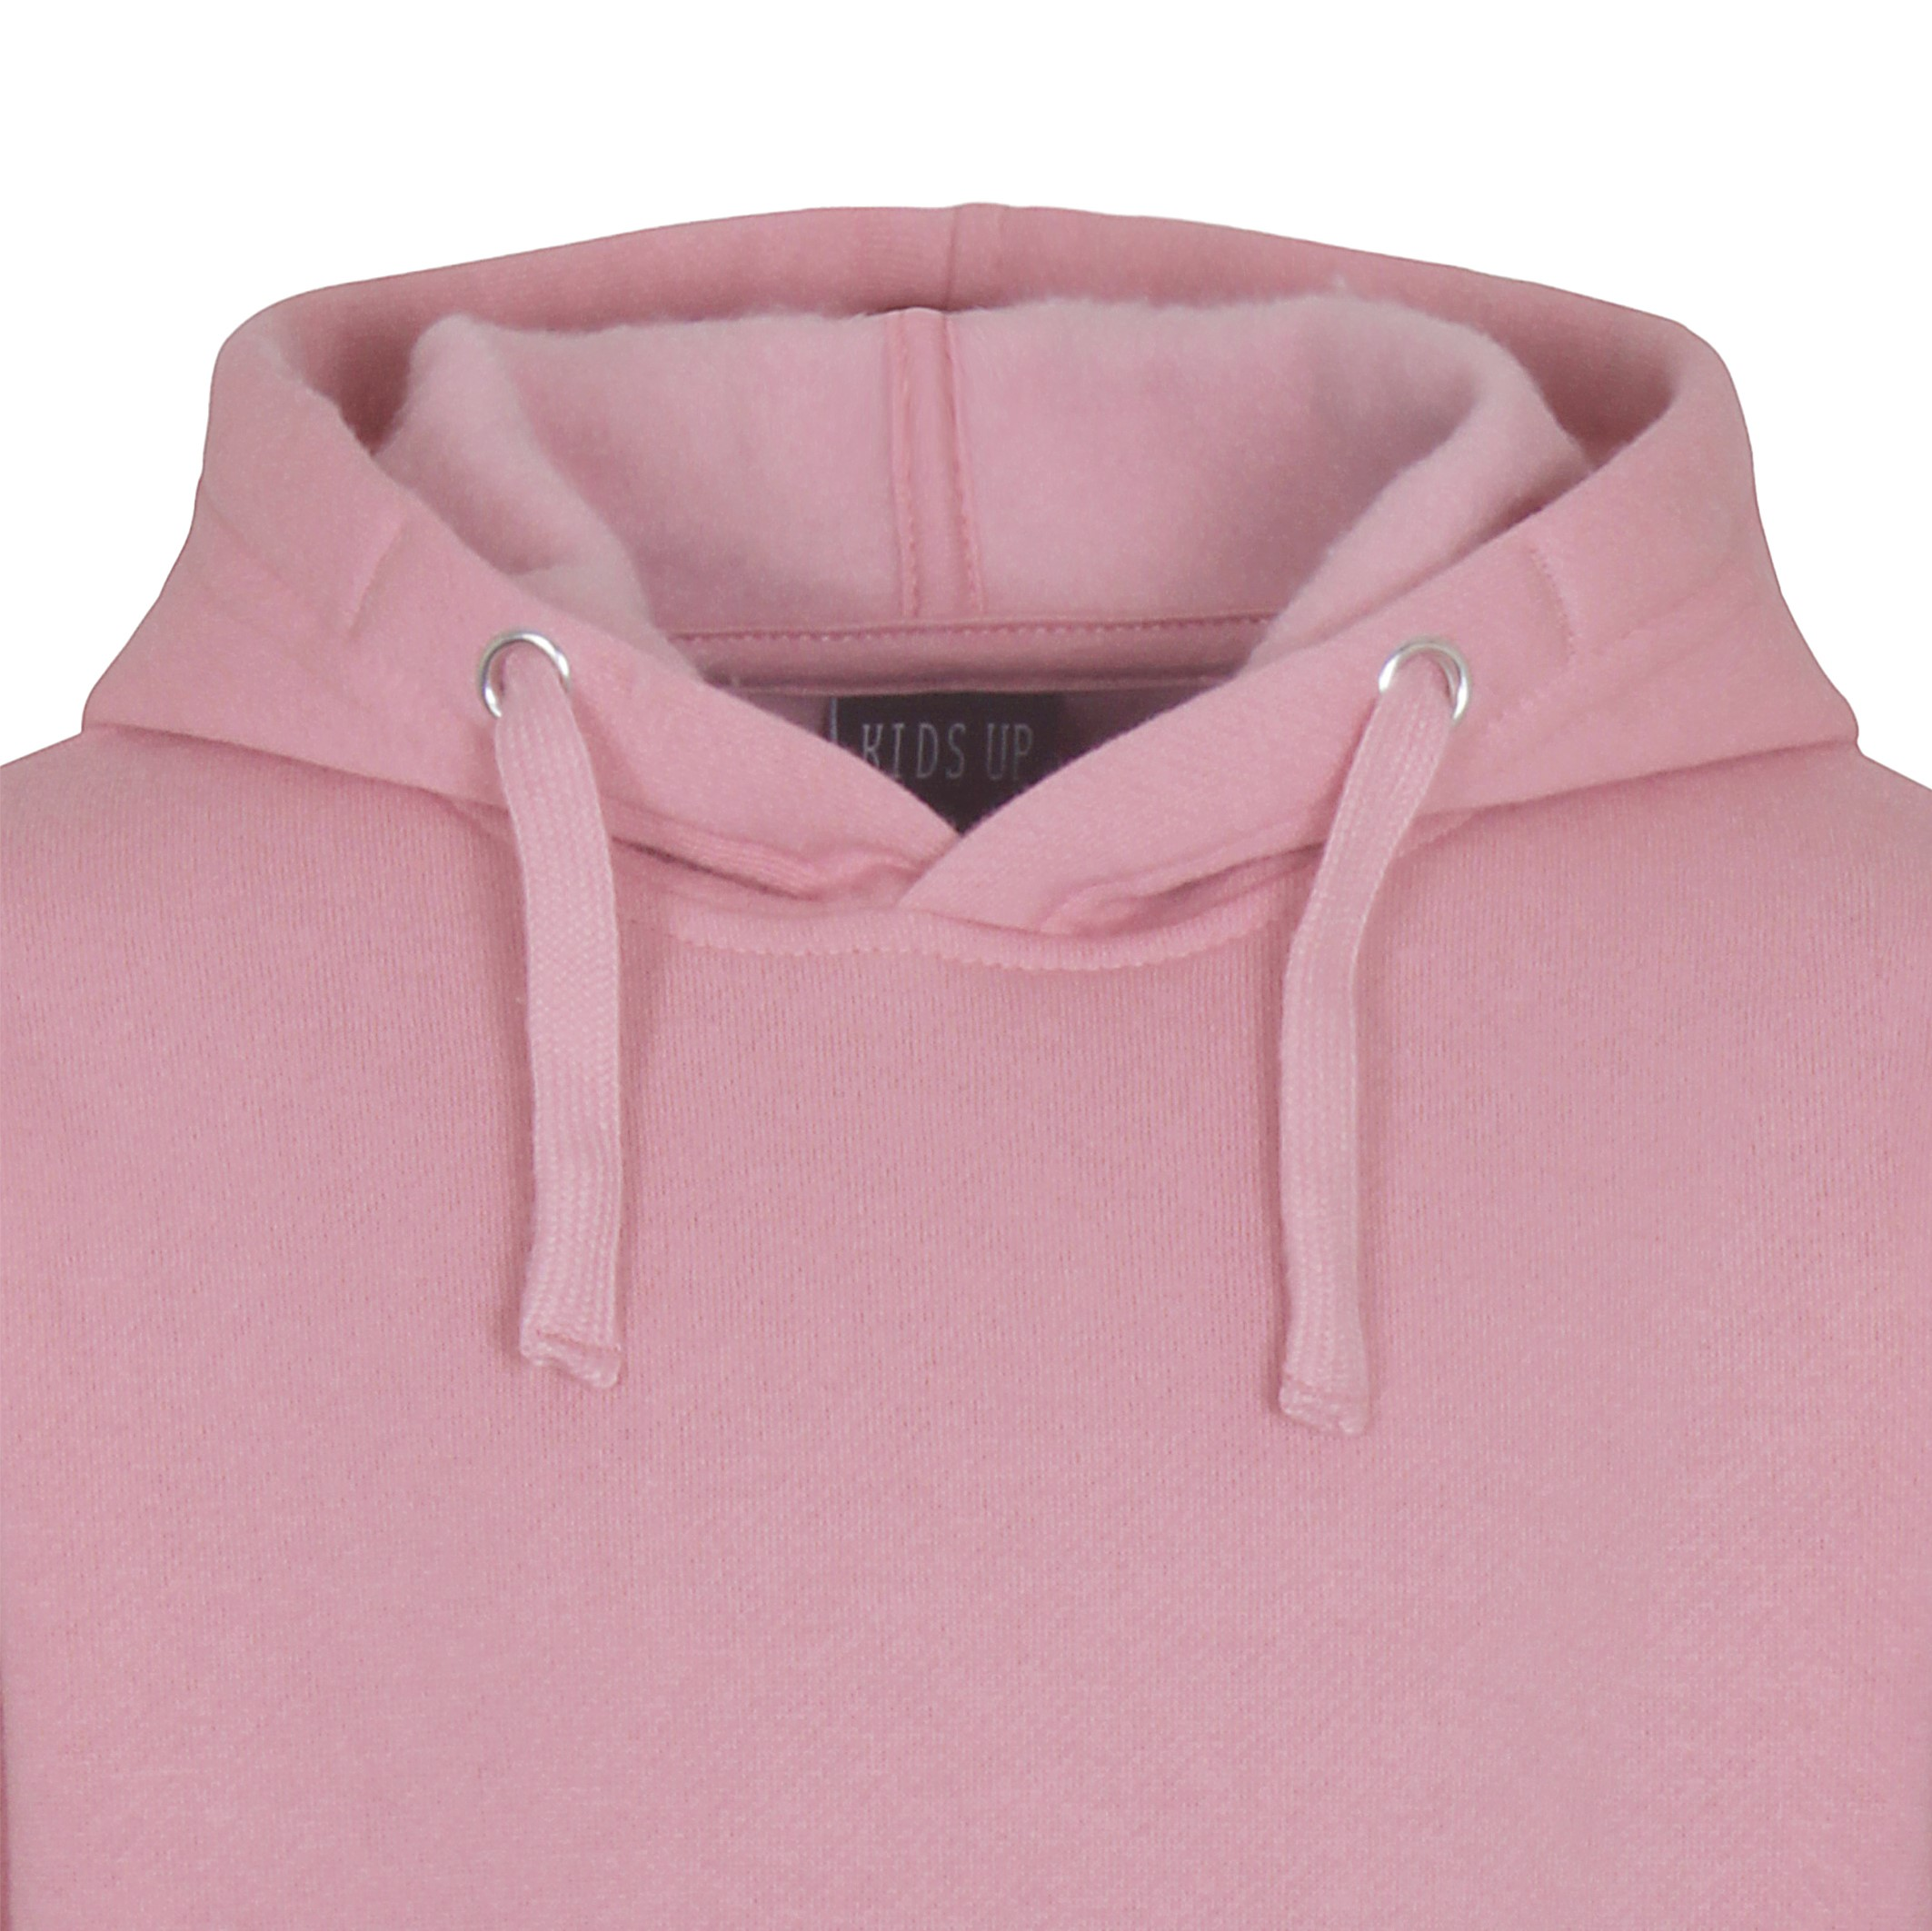 KIDS-UP | SWEATSHIRT - ROSA